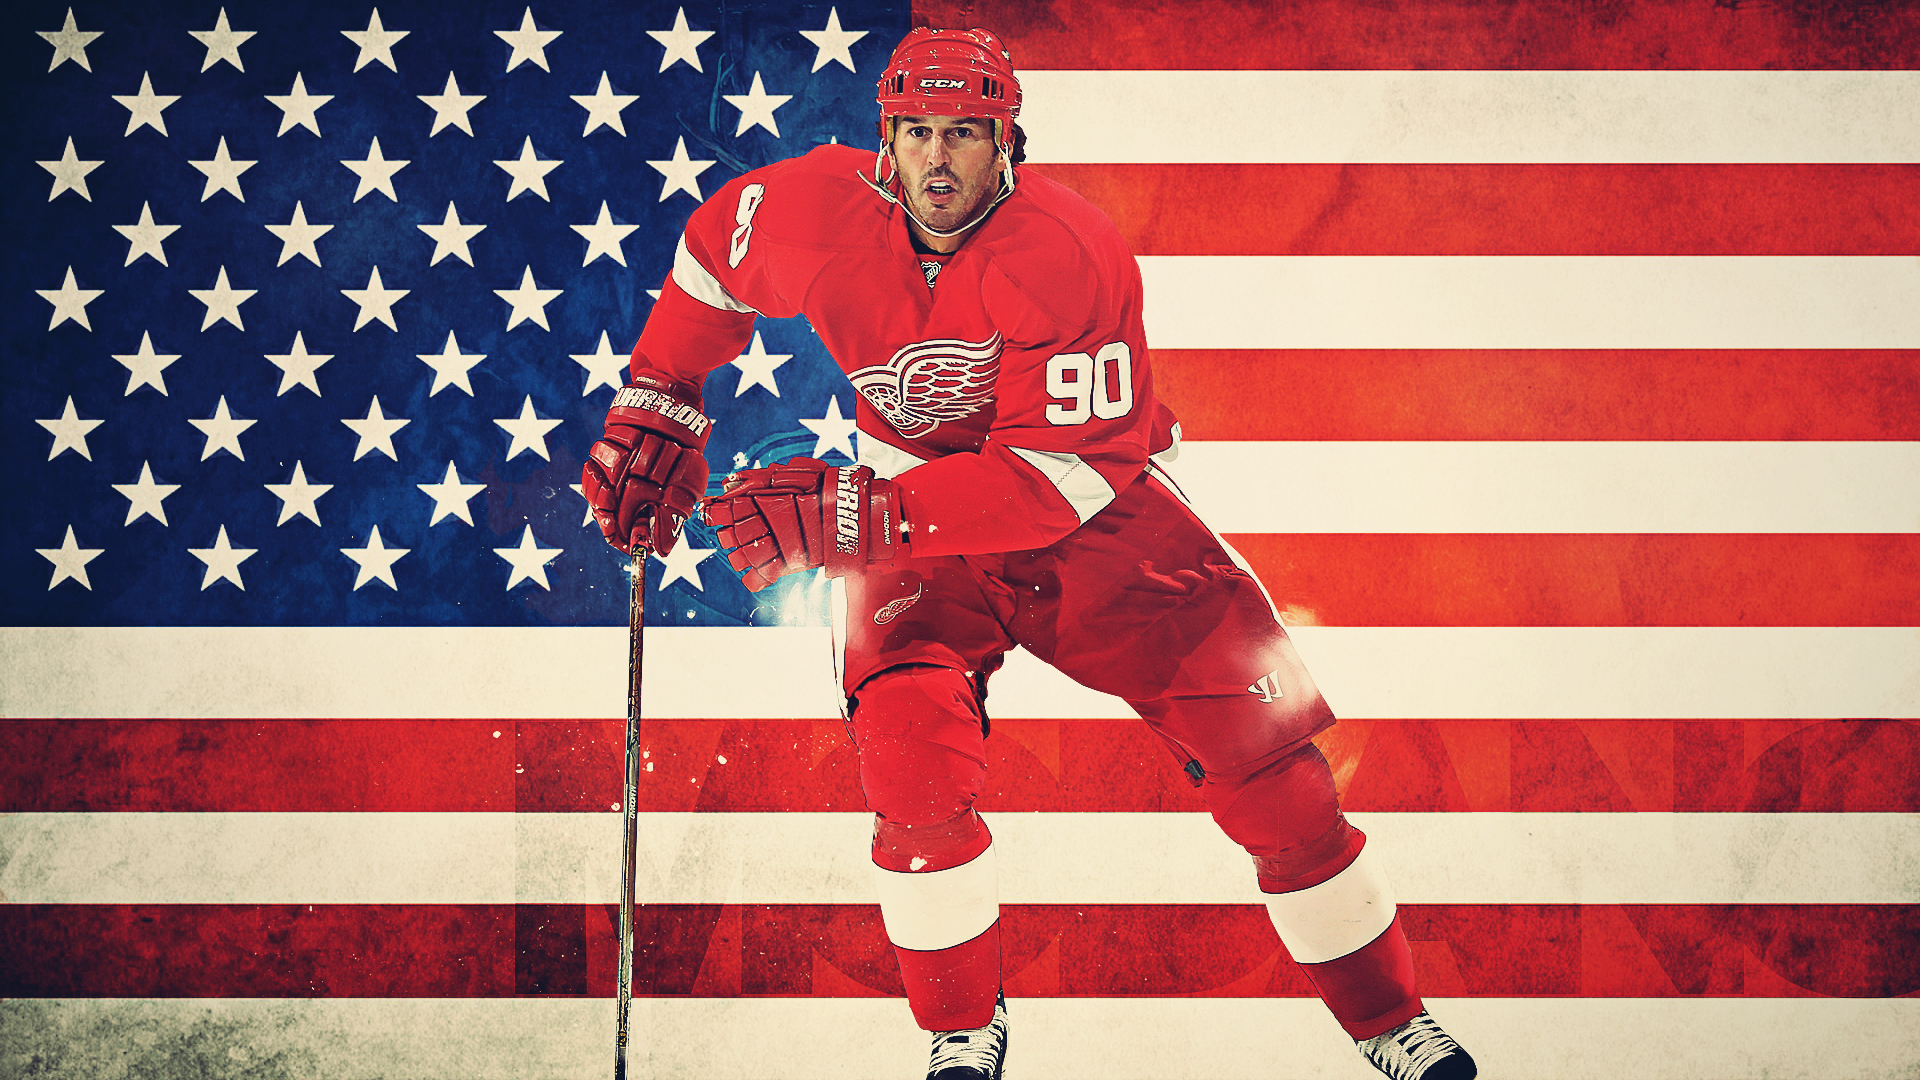 Detroit red wings wallpapers images photos pictures backgrounds detroit red wings download free backgrounds hd voltagebd Gallery